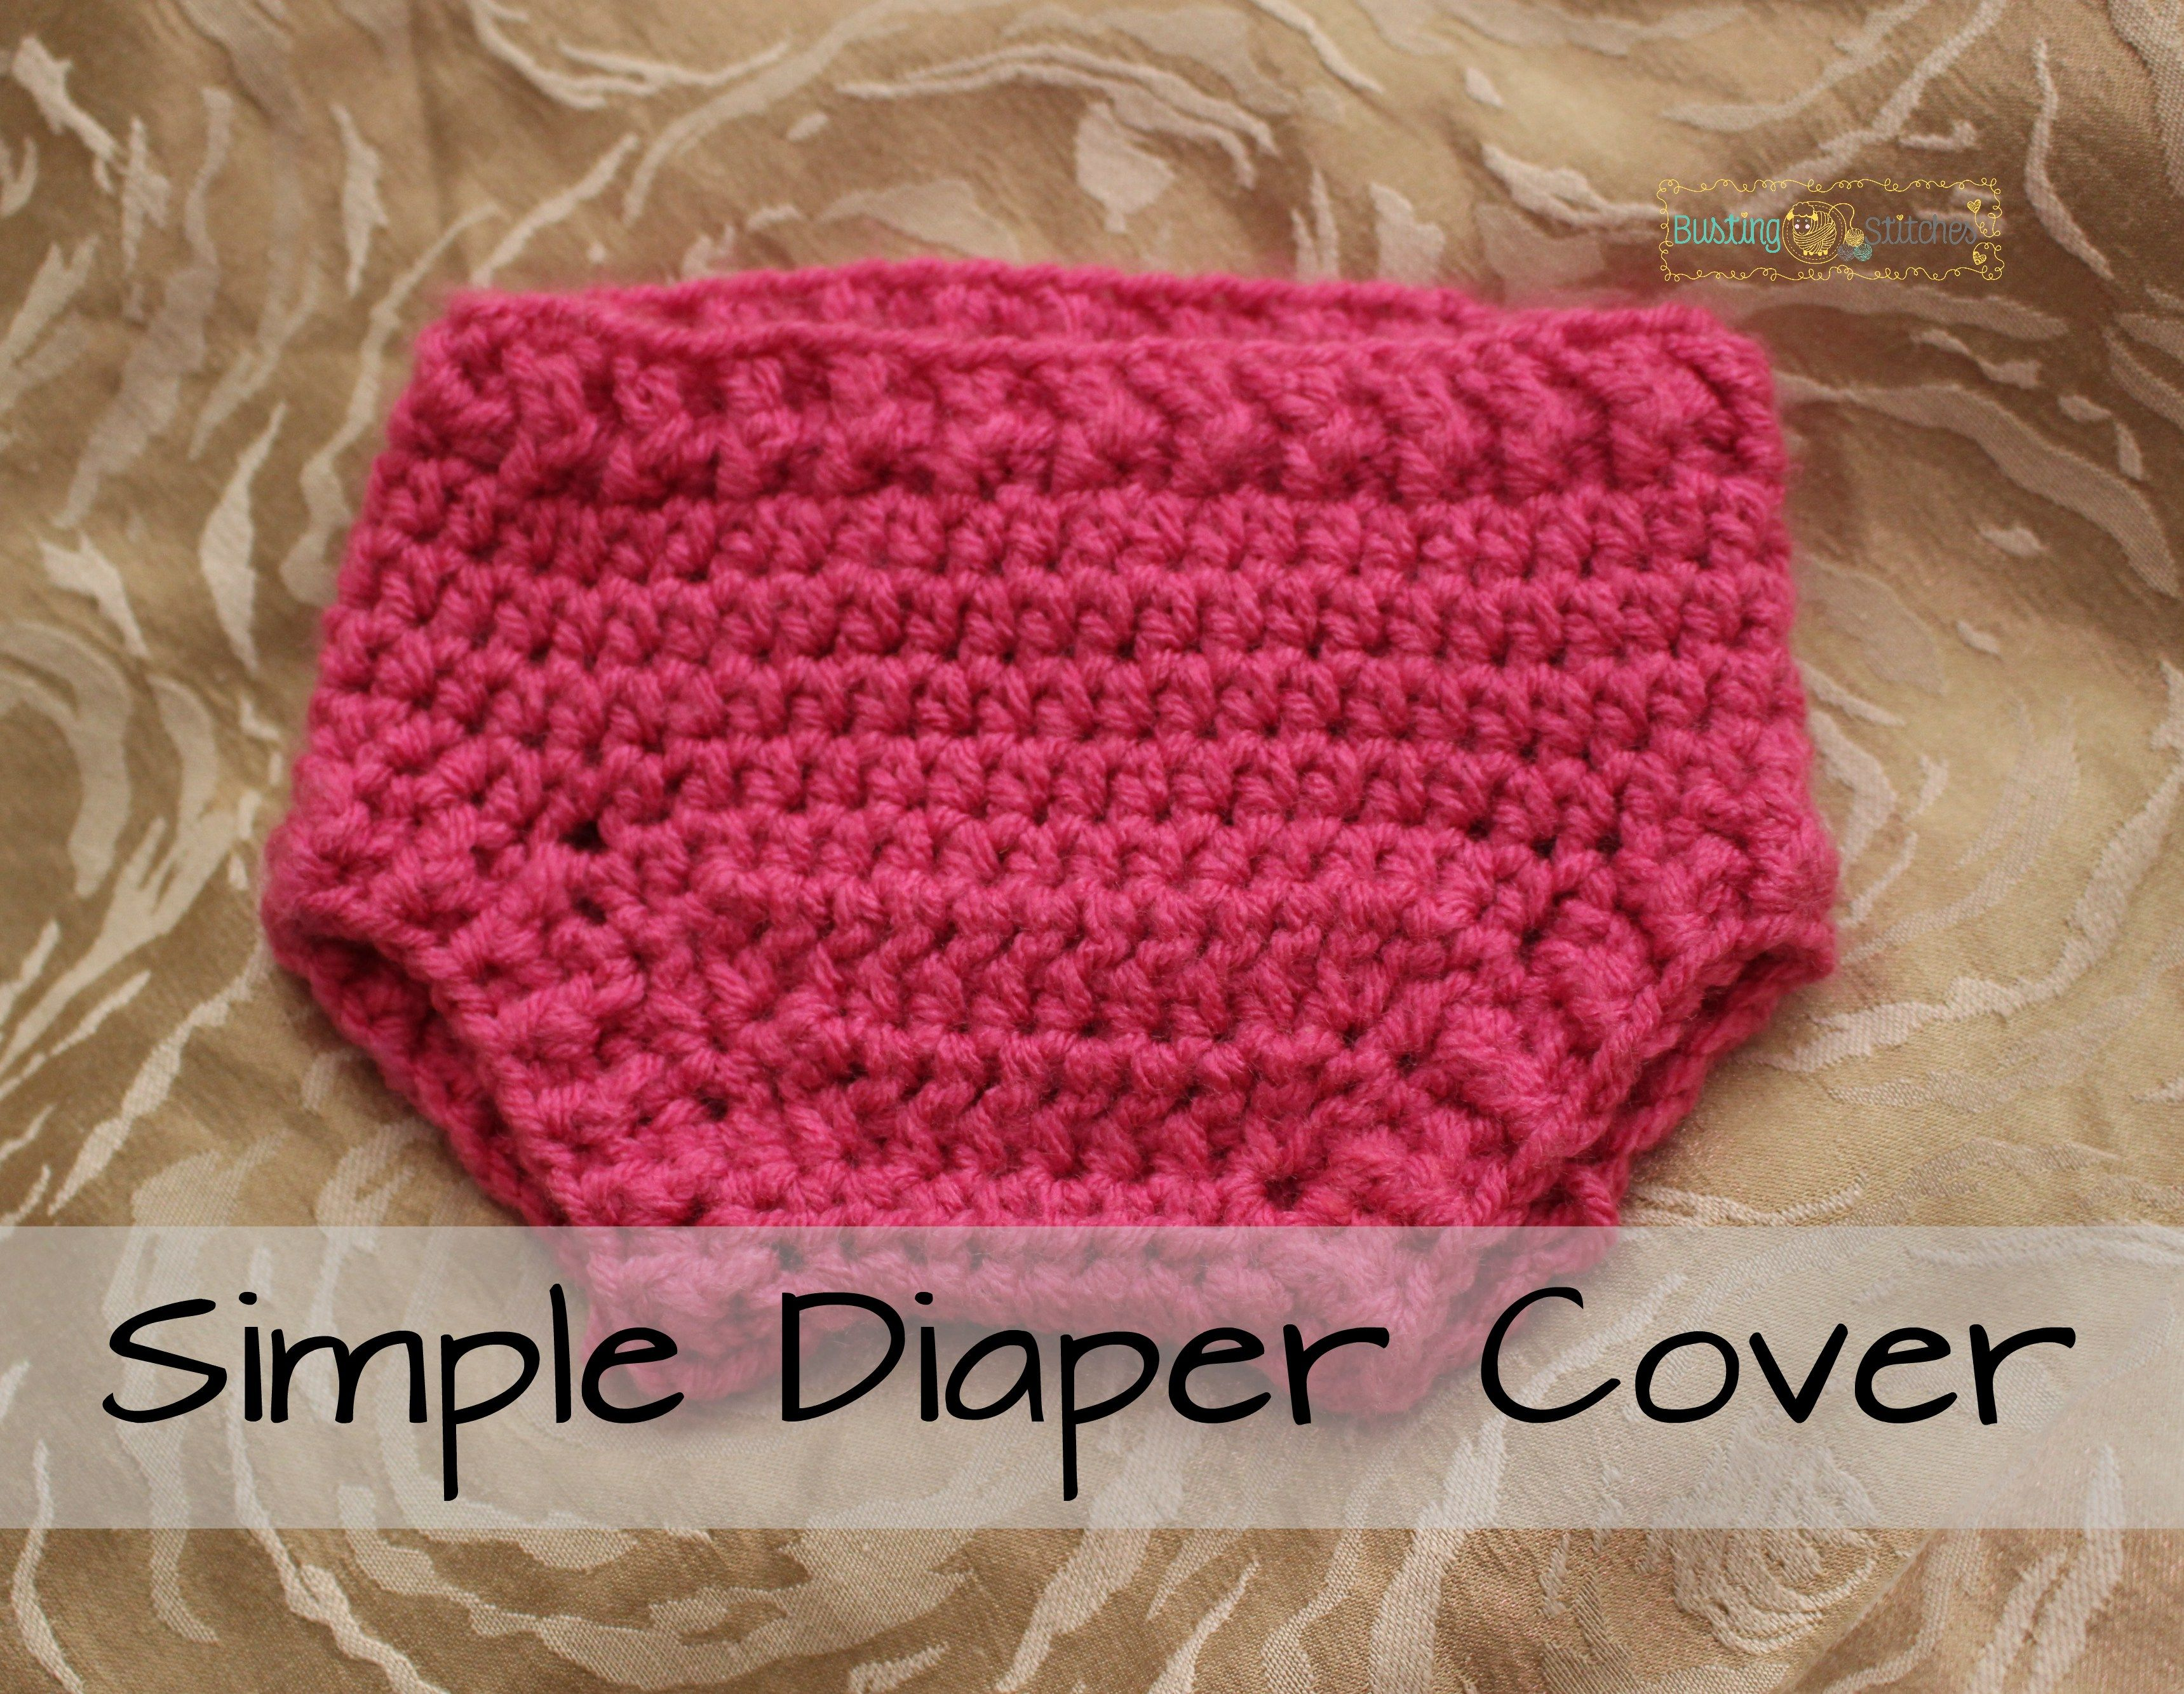 Simple diaper cover free crochet pattern crochet baby simple diaper cover free crochet pattern bankloansurffo Gallery